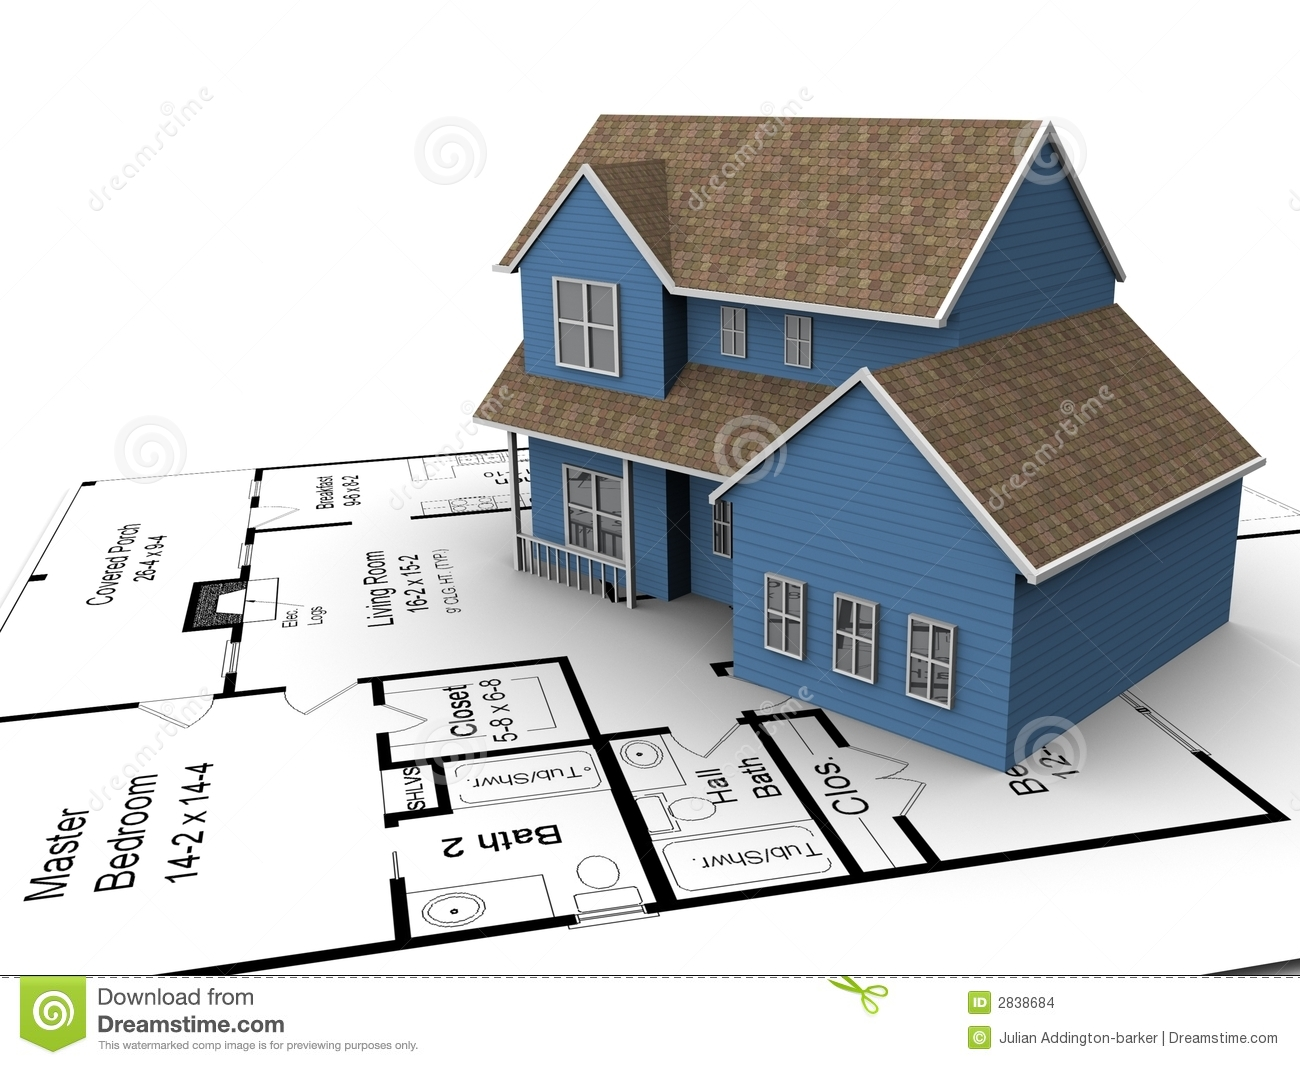 New house plans stock images image 2838684 for House blueprint images